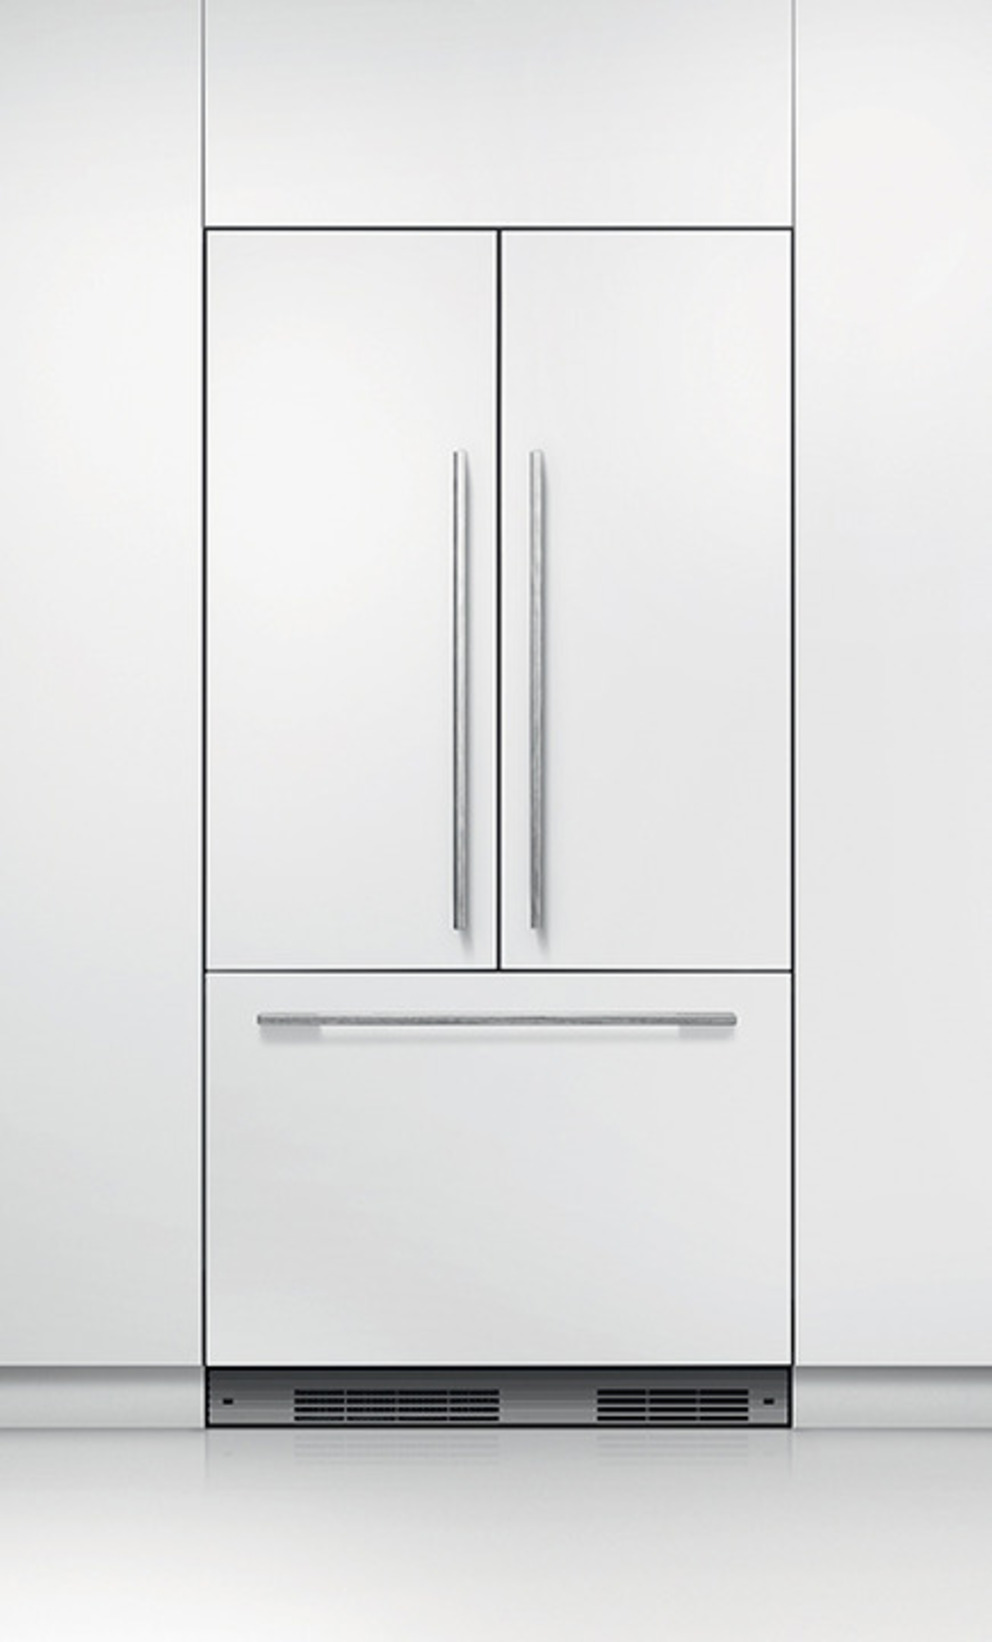 Fridges Fisher&Paykel RS36A72J1 (72'' F&P)